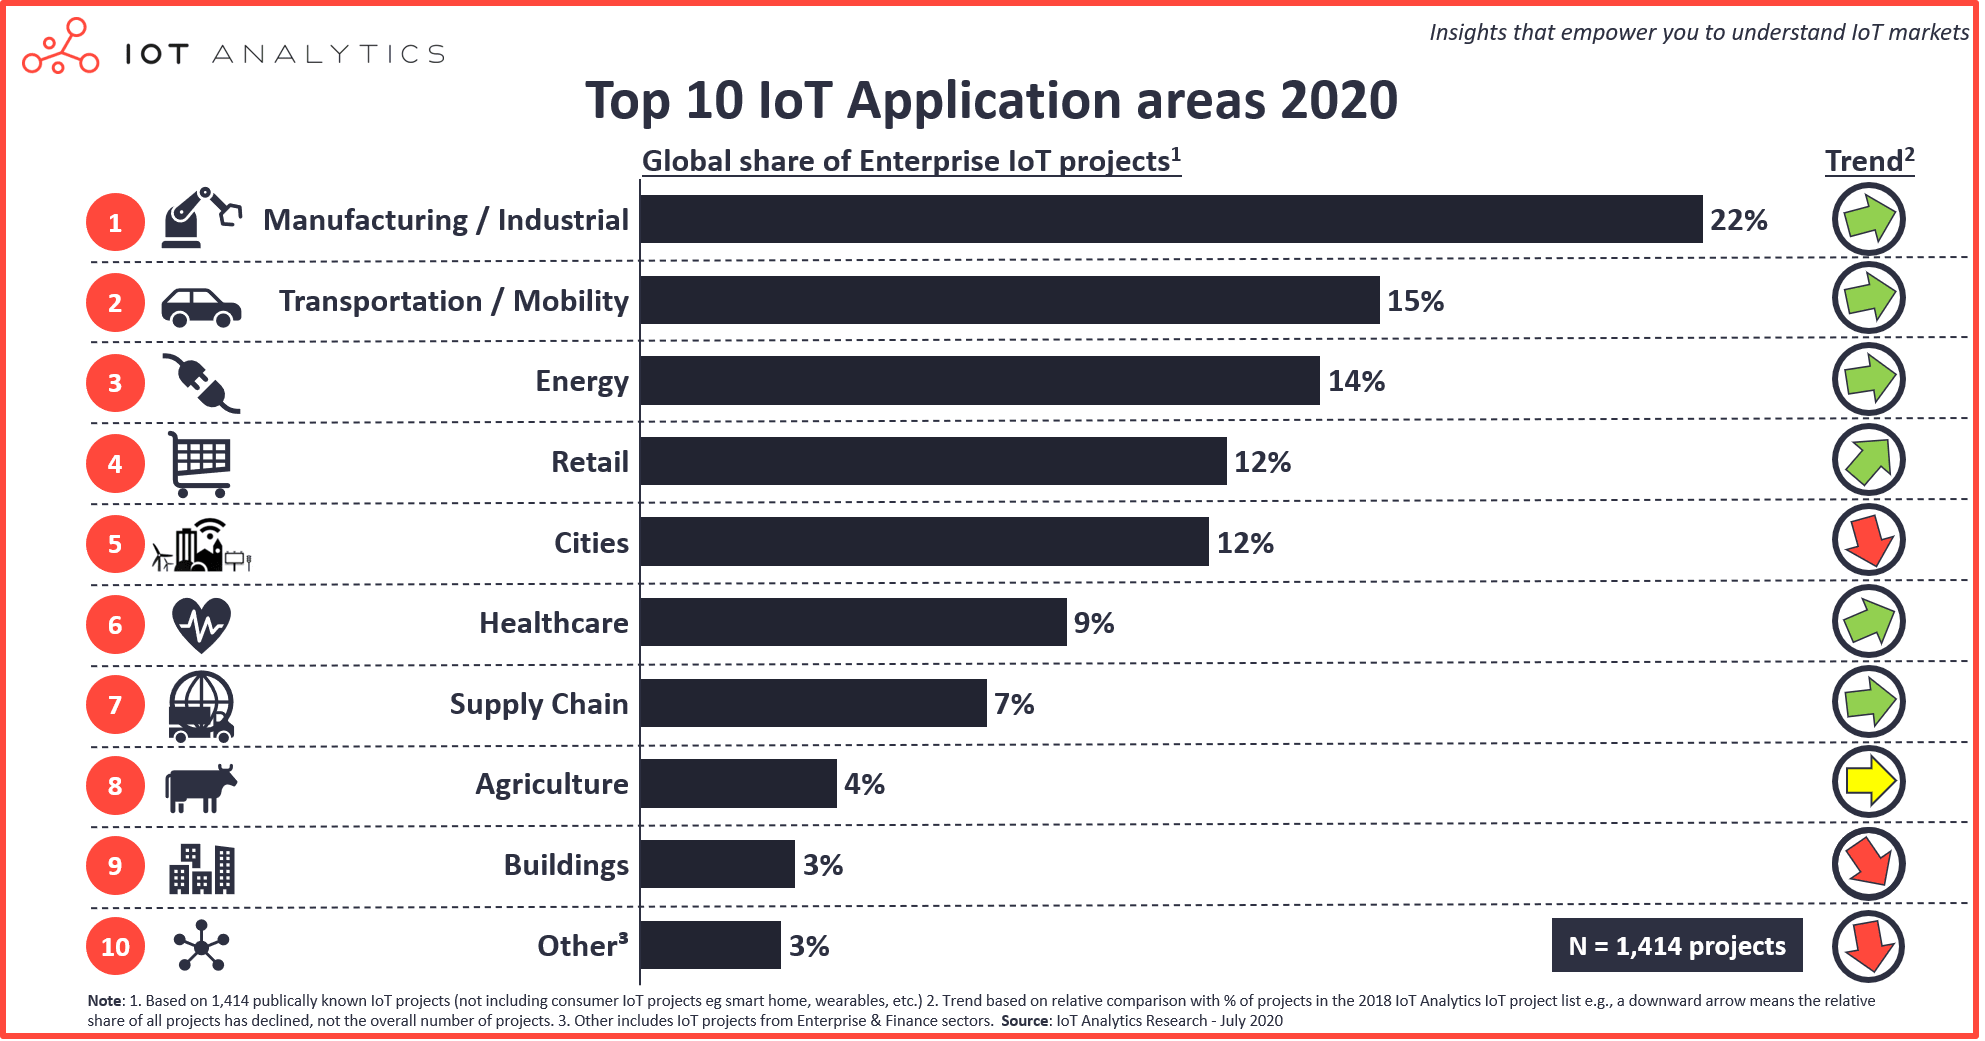 Top 10 IoT Applications